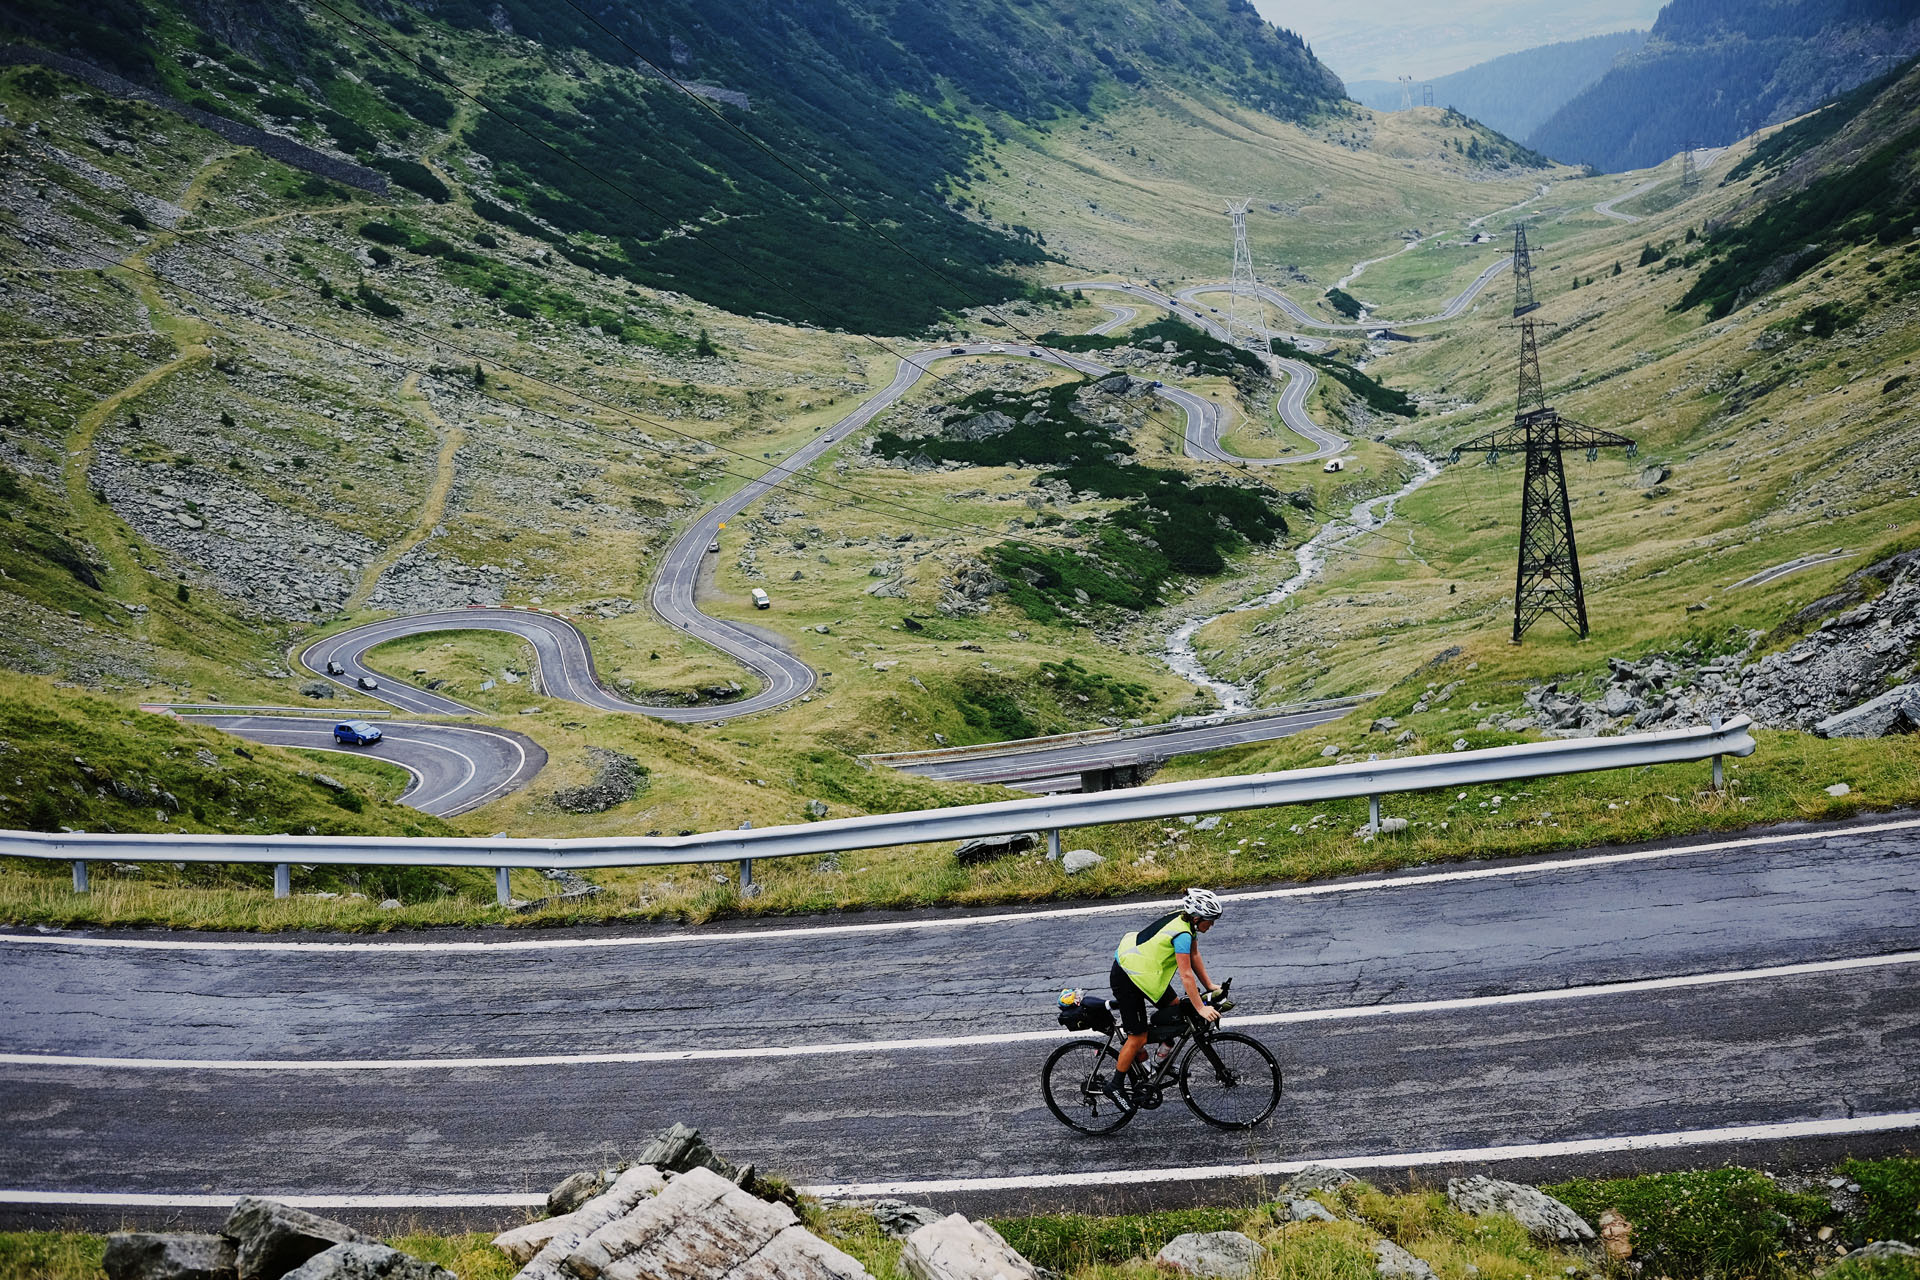 Serpentine roads during the #TCRN05